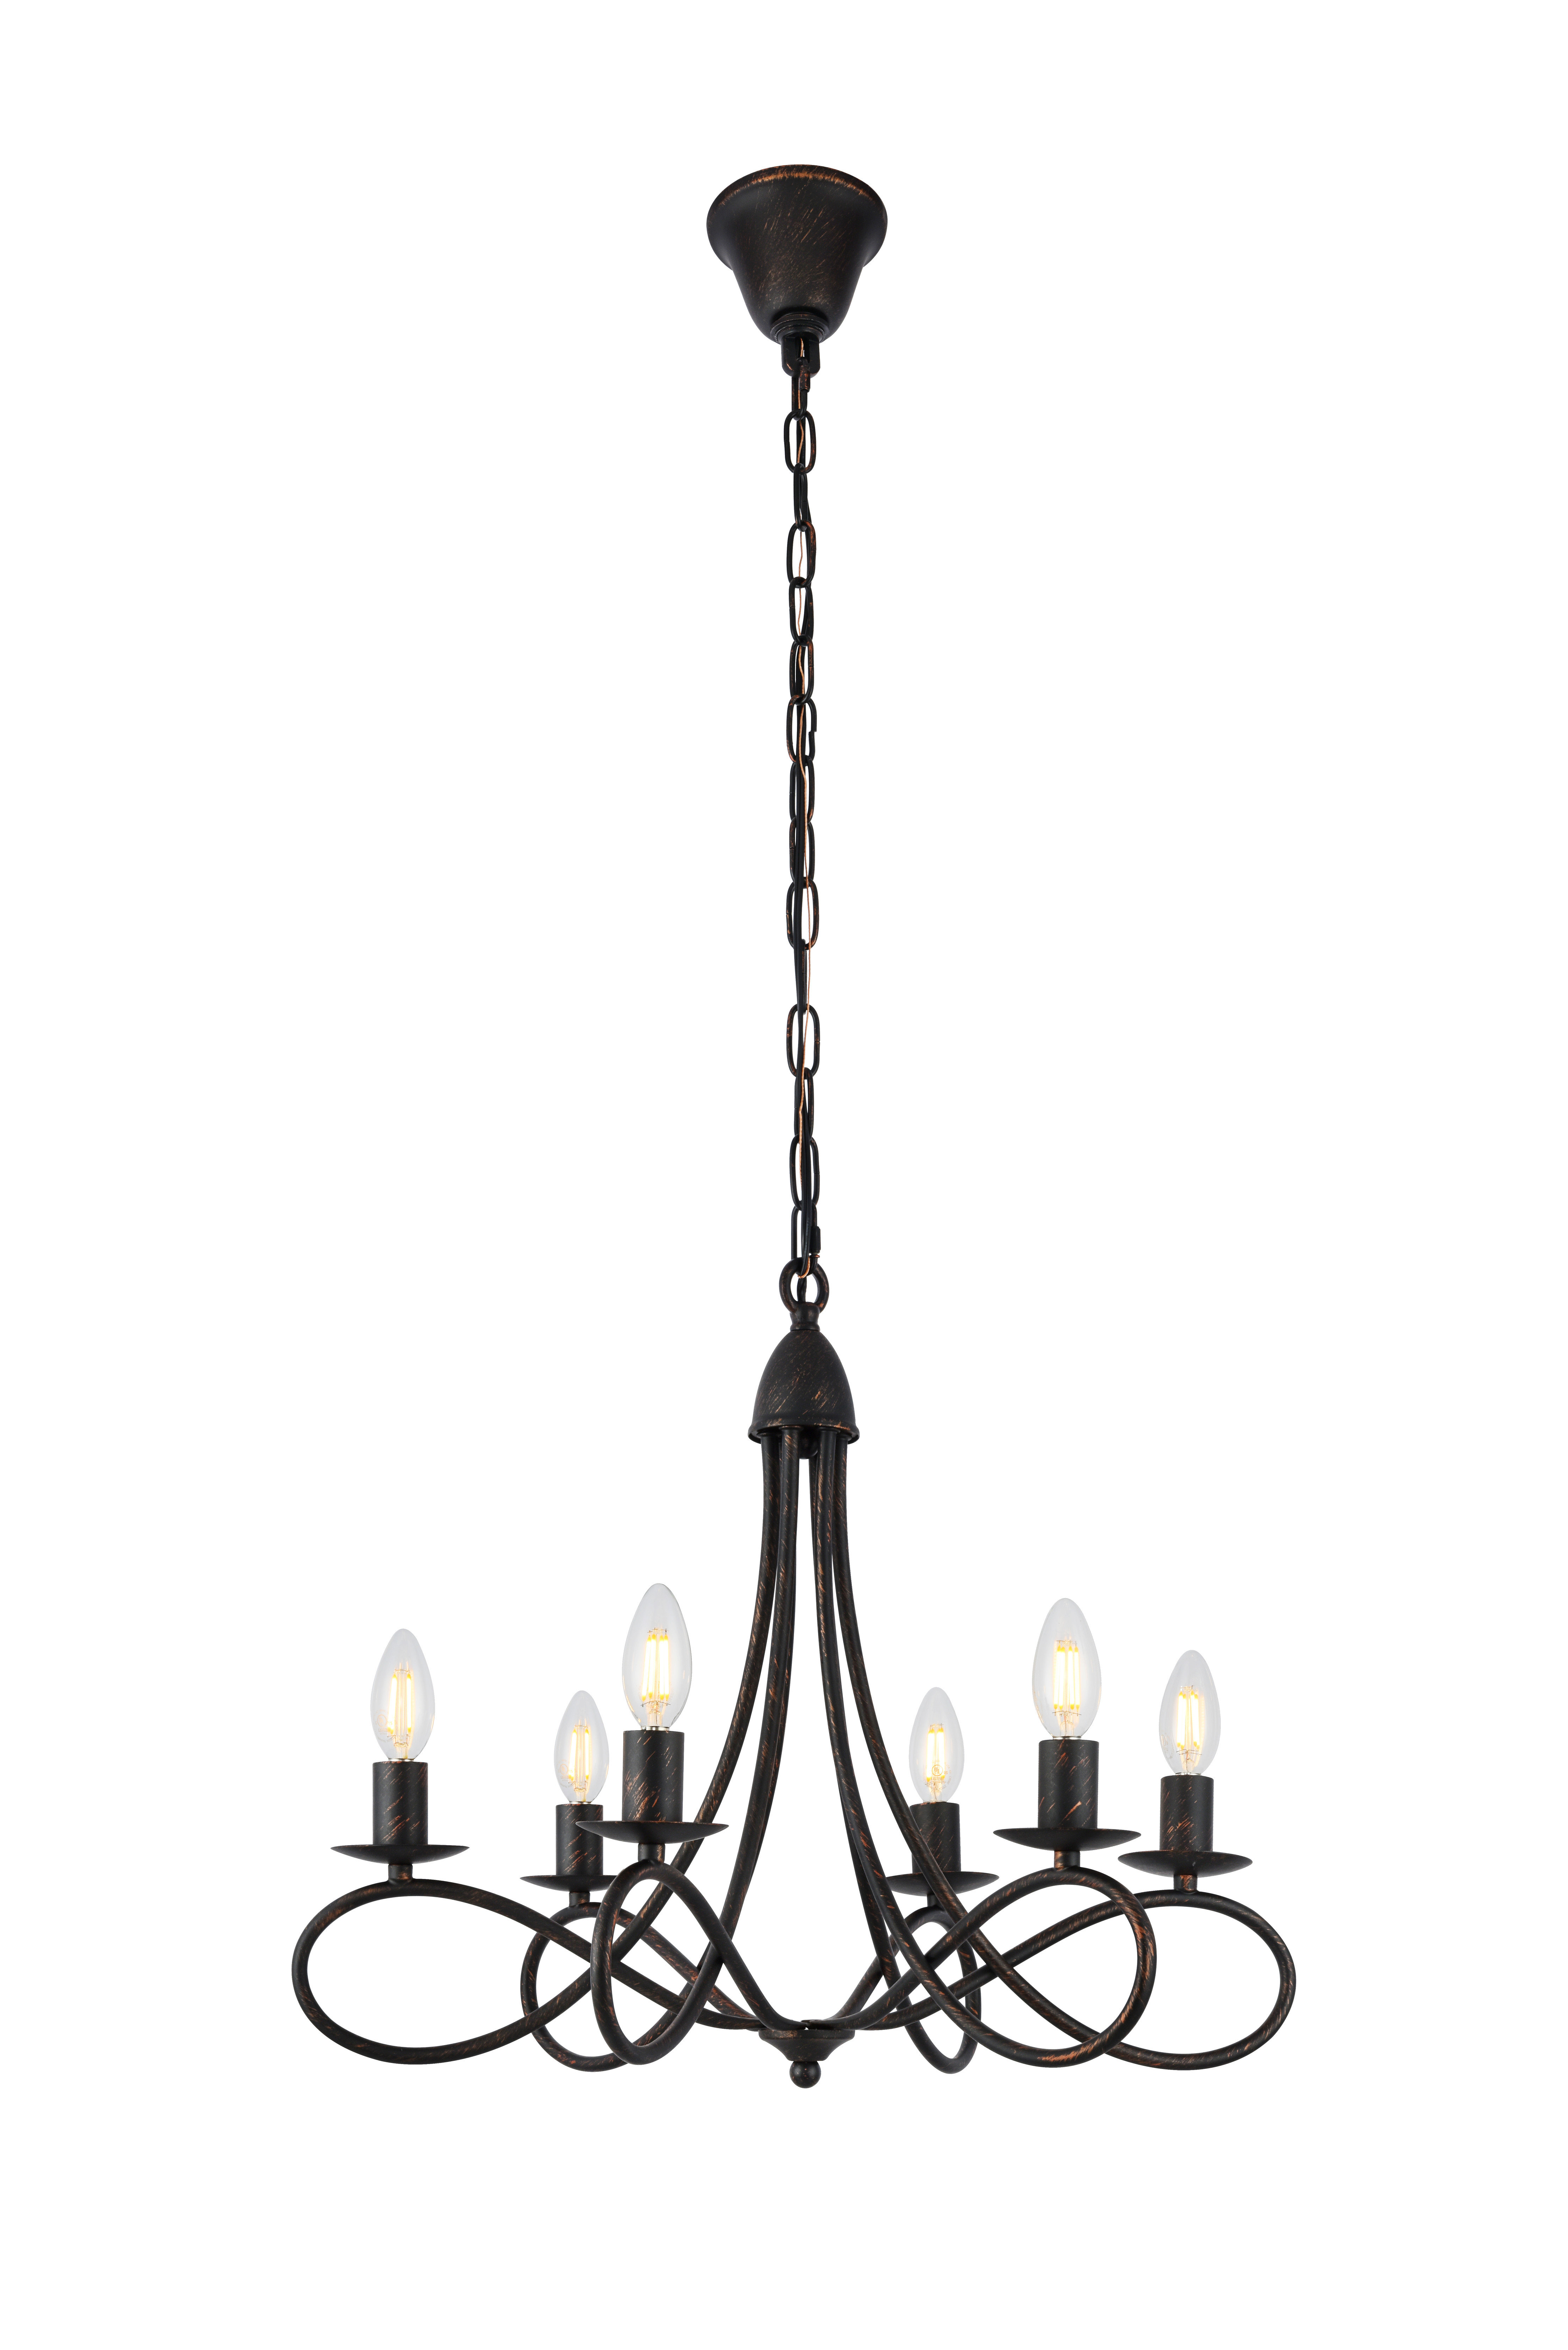 6 Light Candle Chandelier | Wayfair Pertaining To Bouchette Traditional 6 Light Candle Style Chandeliers (View 15 of 30)